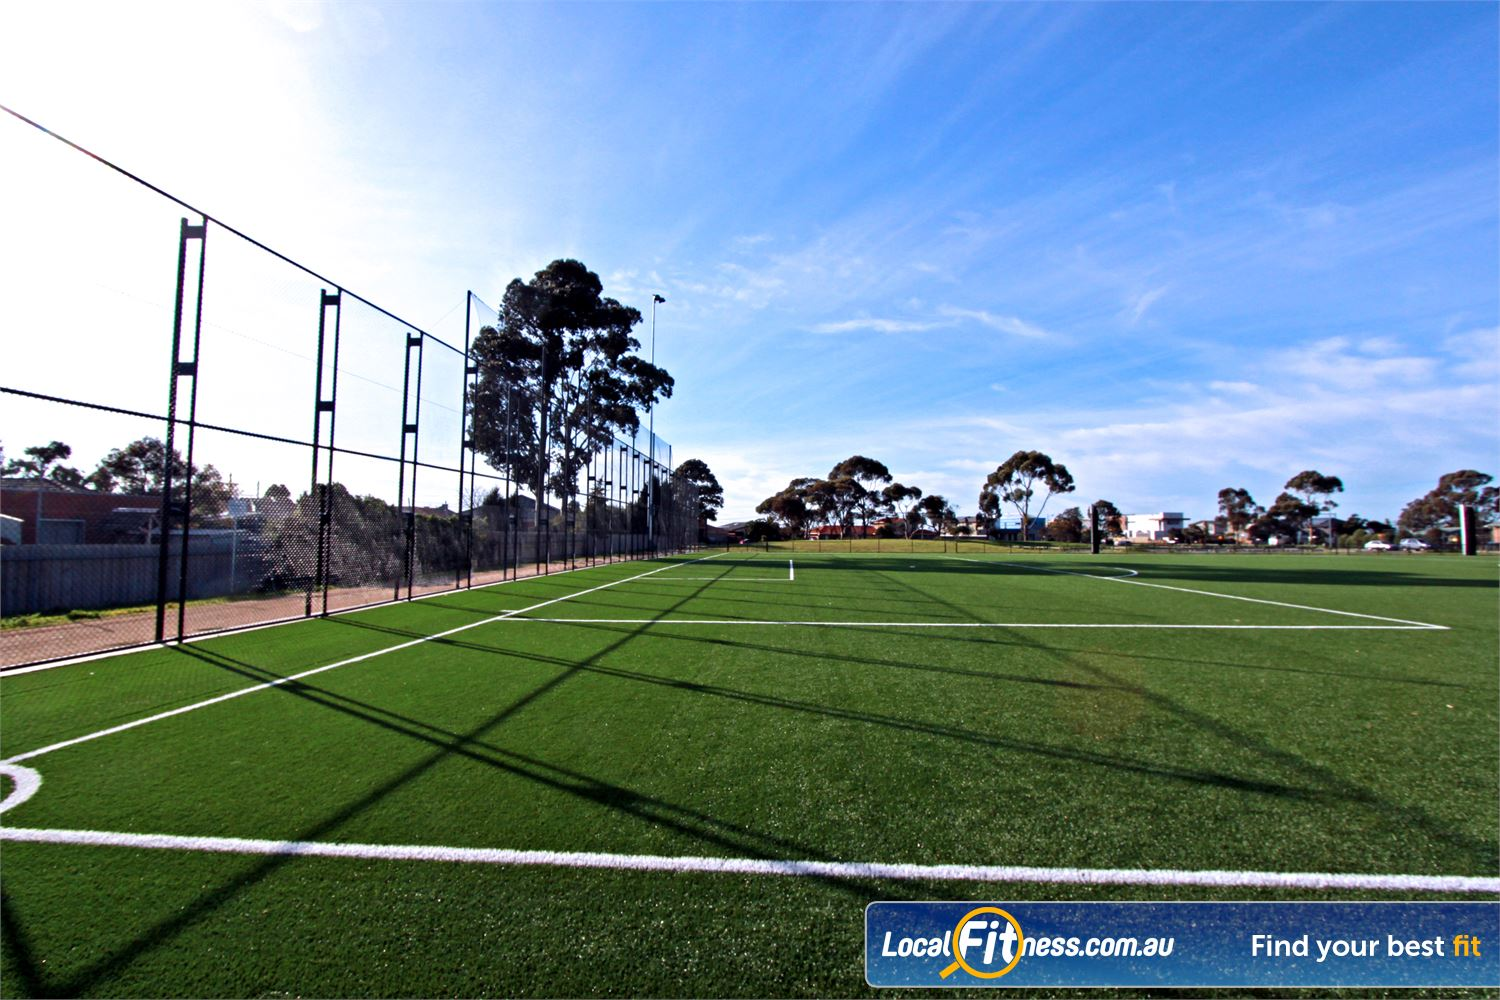 East Keilor Leisure Centre Near Niddrie We boast a FIFA One star rated synthetic East Keilor soccer pitch with lights.